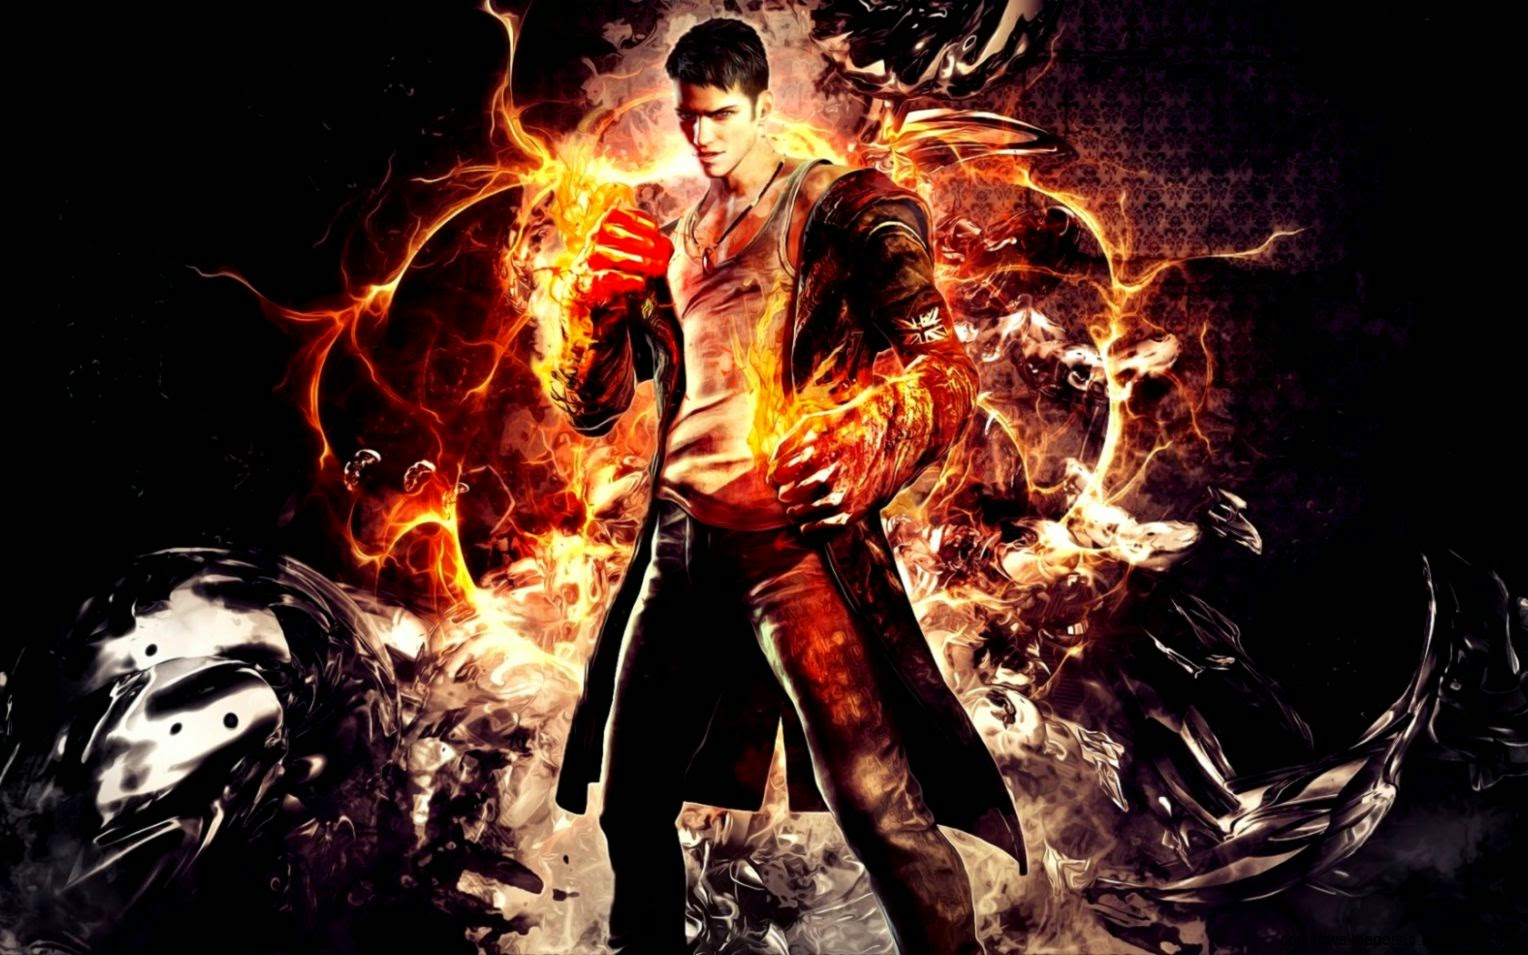 Devil may cry wallpaper hd cool hd wallpapers view original size voltagebd Images